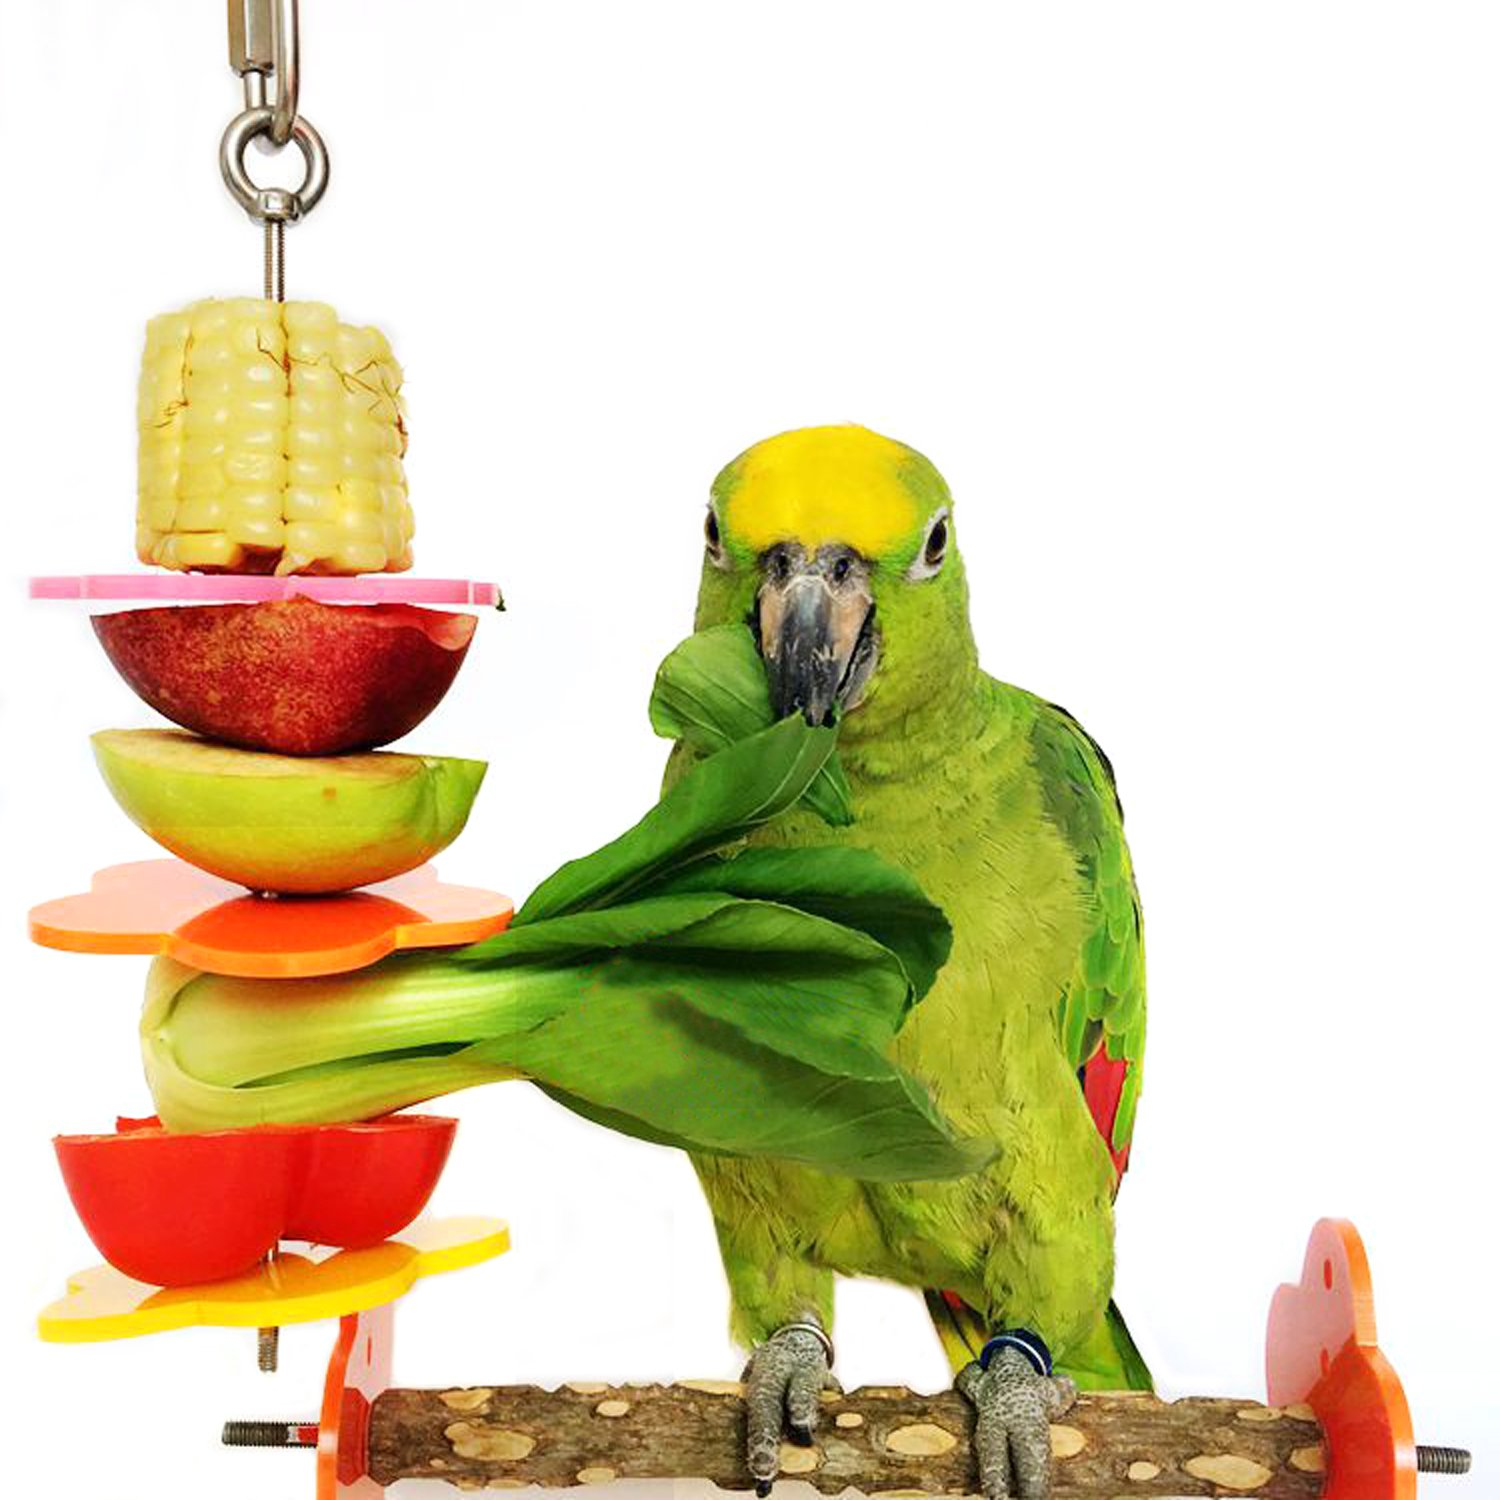 Rypet Bird Skewer,Bird & Small Animals Stainless Steel Fruit Vegetable Holder for Cages, Large